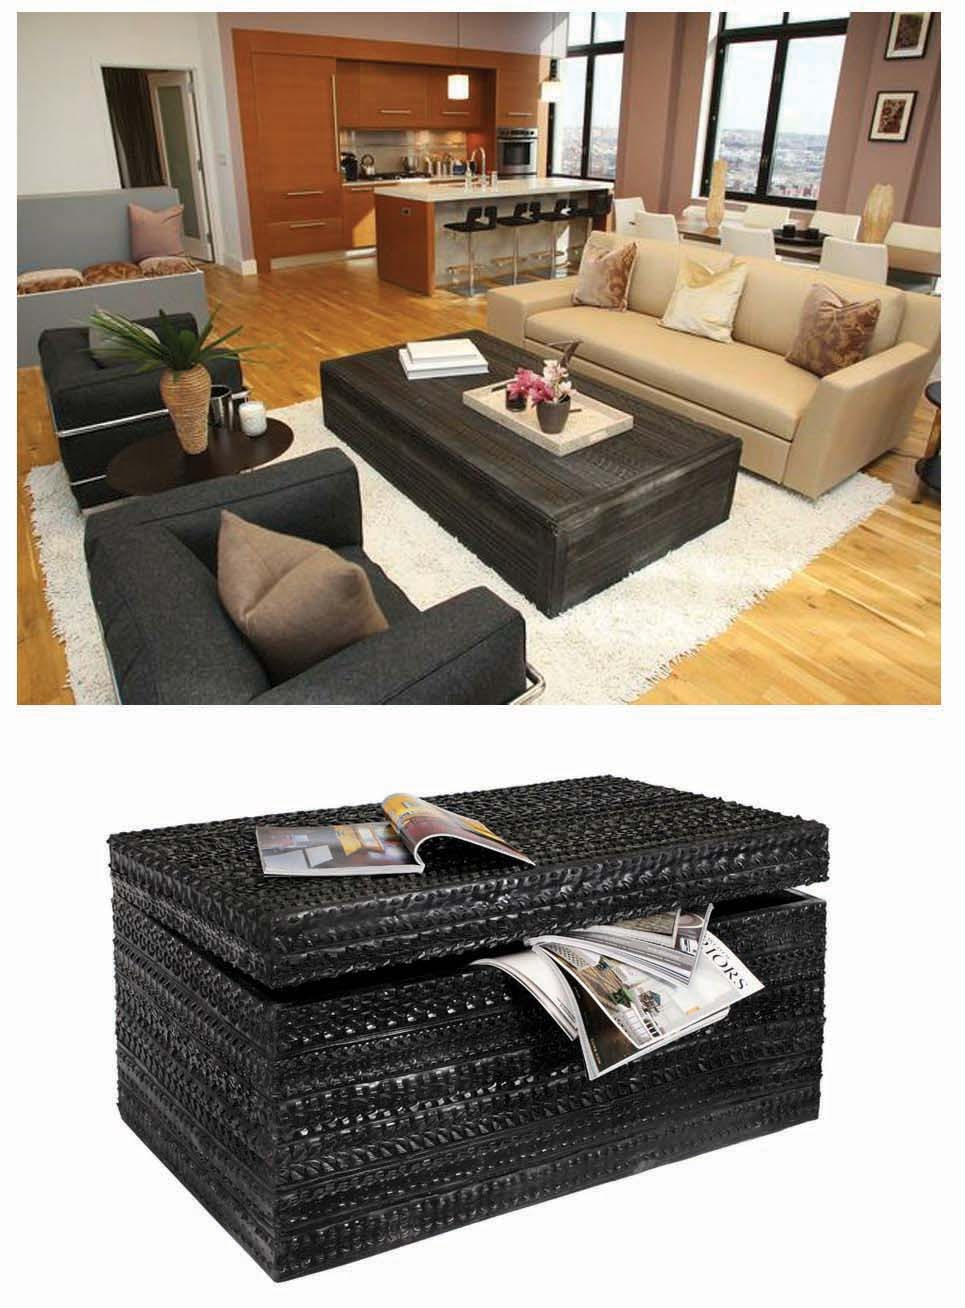 "ND Tip:  Since this unique piece is manufactured overseas and will be near impossible to find here in the US, think of ways you can recreate this style with your own resources! RECYCLED TYRE TRUNK $385 Incredibly versatile this is more than just a storage box it's an original and decorative piece of furniture. Each trunk is hand made using individual strips of recycled tyre tread that creates an incredibly decorative surface design. Offering style and functionality when used as a coffee or side table and providing practical storage to hide away all sorts of household clutter. Each trunk is creatively hand made and the tread patterns can vary making each piece truly unique. Decorative patterns created by the tyre tread have the dark lustre of leather and the carved detail of wood with the durability of rubber. Due to the nature of this product all patterns and sizes may vary slightly. W40"" x D22"" x H20"""